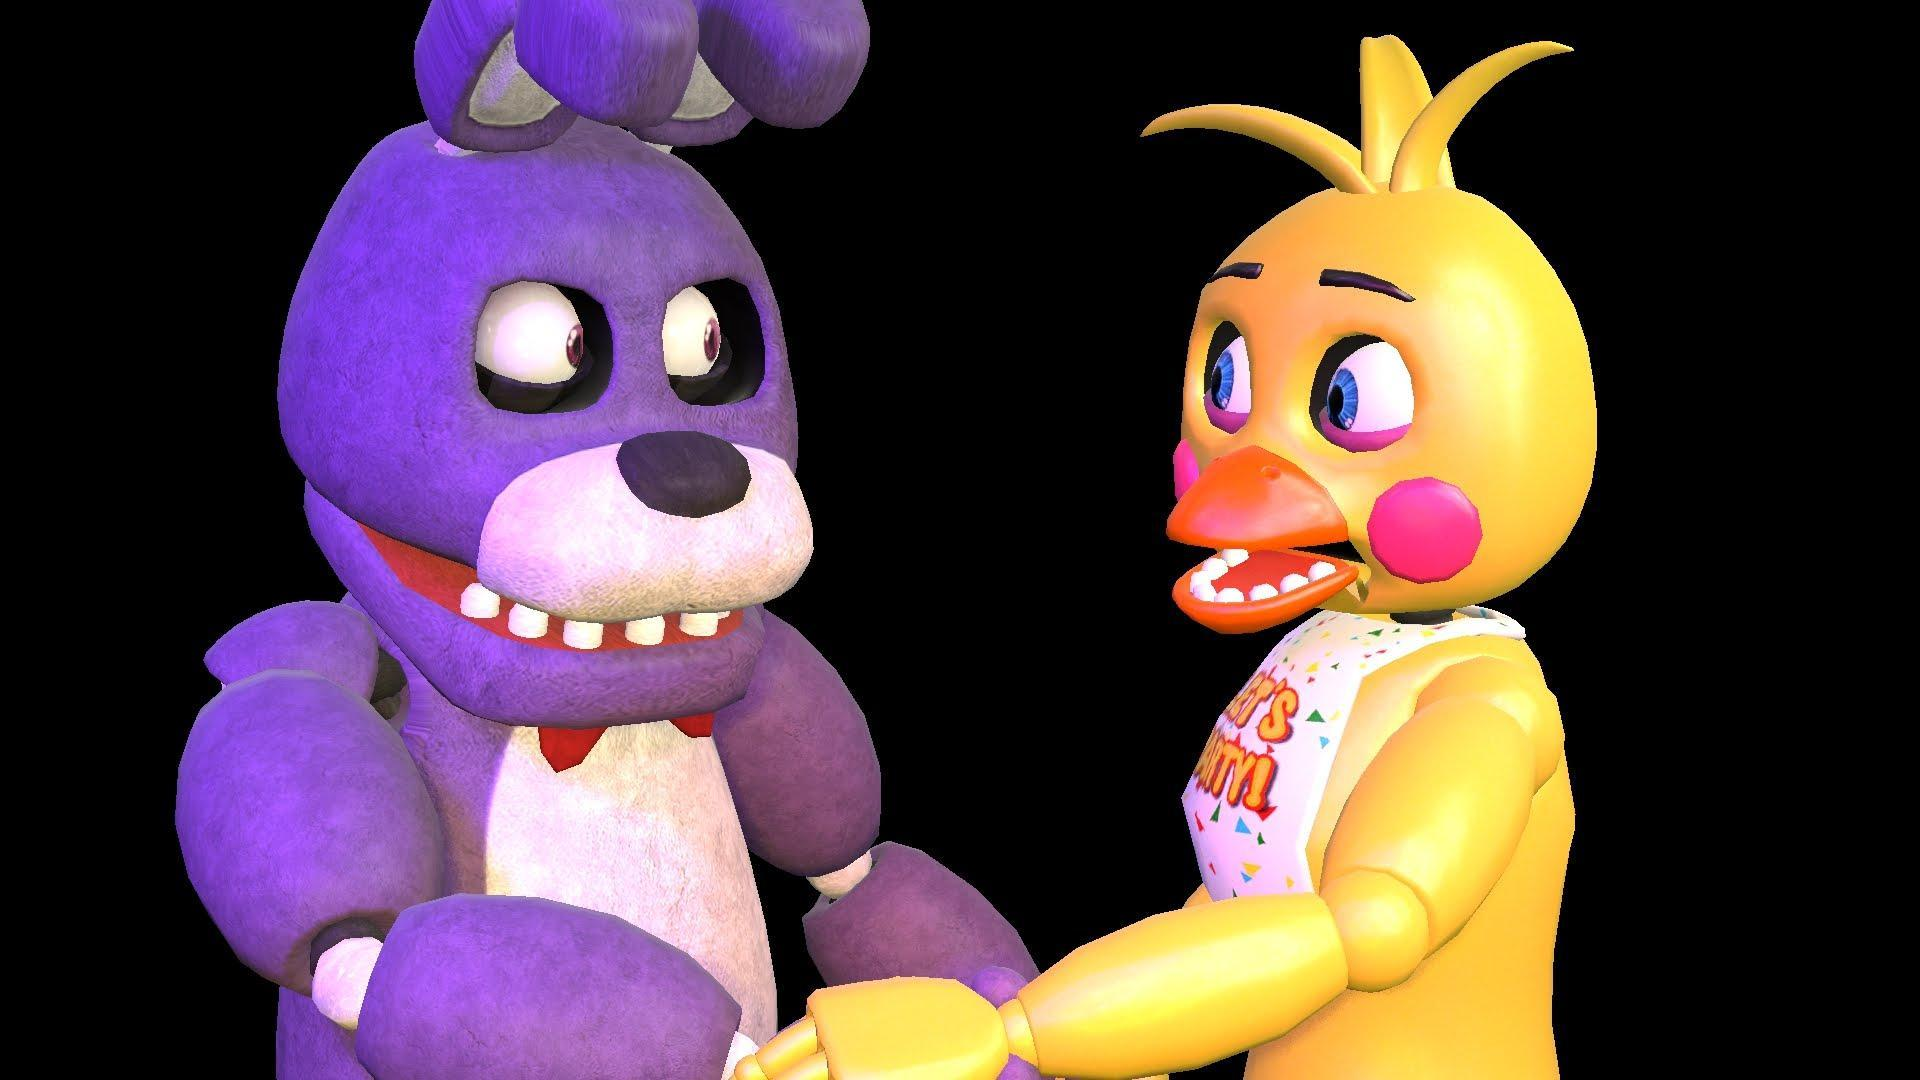 In the sfm Bonnie x Toy Chica. Who was boring?